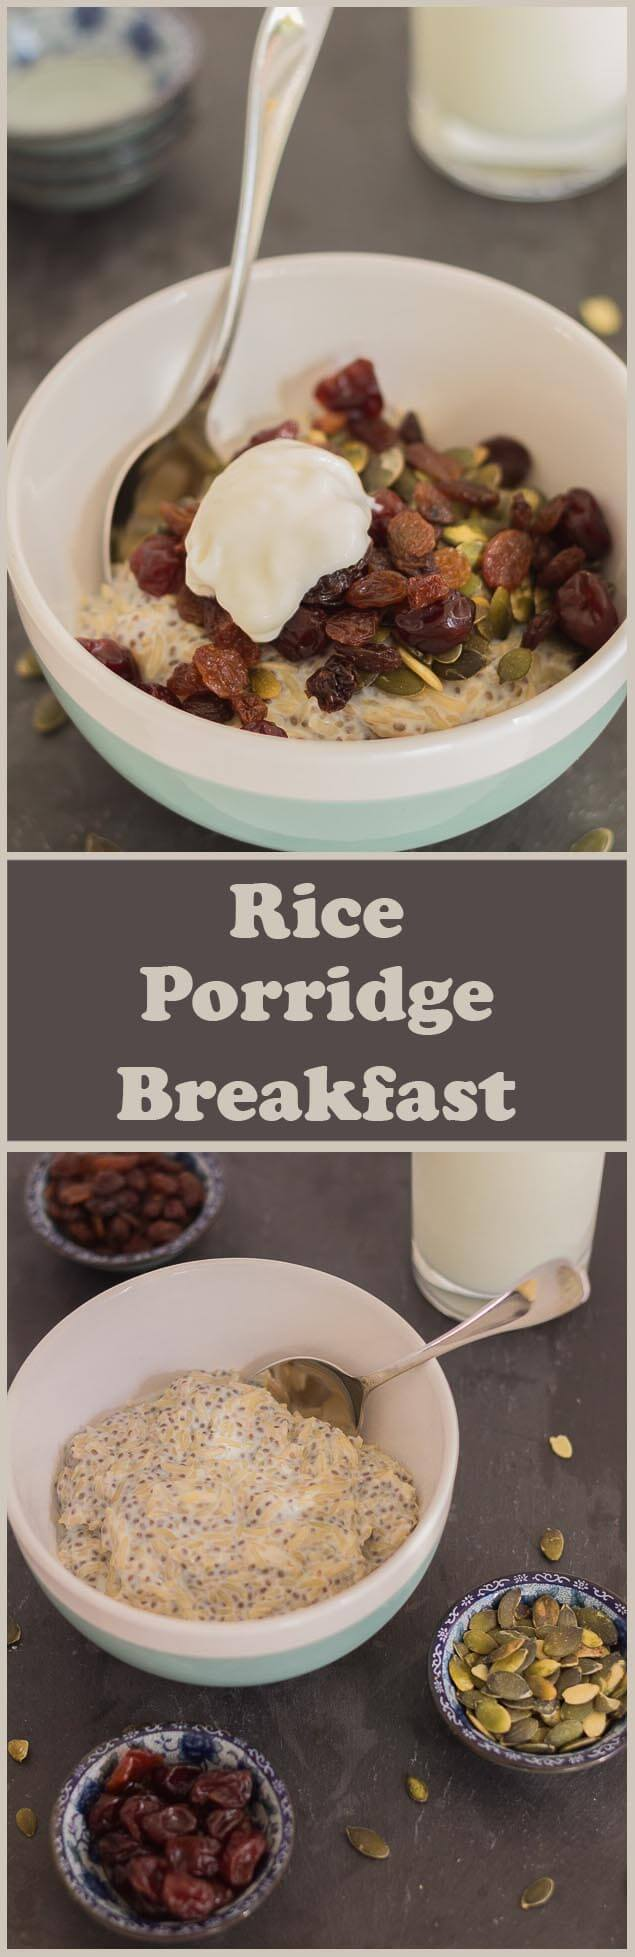 This rice porridge breakfast makes a delicious and ready to be heated up morning porridge breakfast. Ideal for using up either white or wholegrain basmati rice. Your body will thank you for a proper nutritional start to the day!